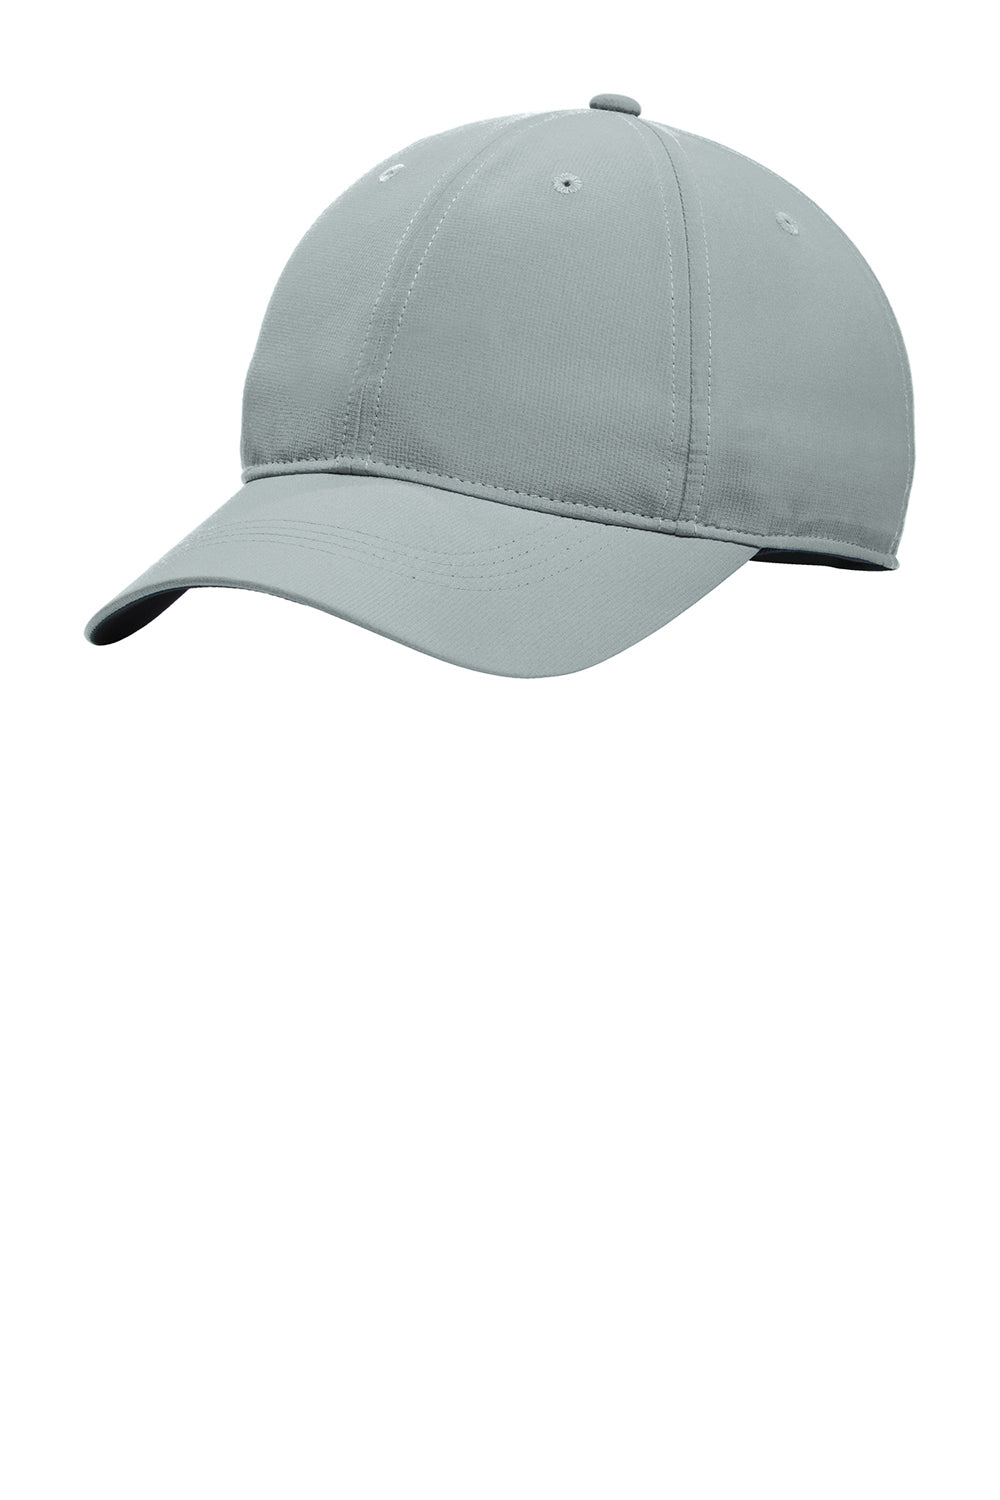 Nike NKAA1859 Mens Dri-Fit Moisture Wicking Adjustable Hat Cool Grey/White Front